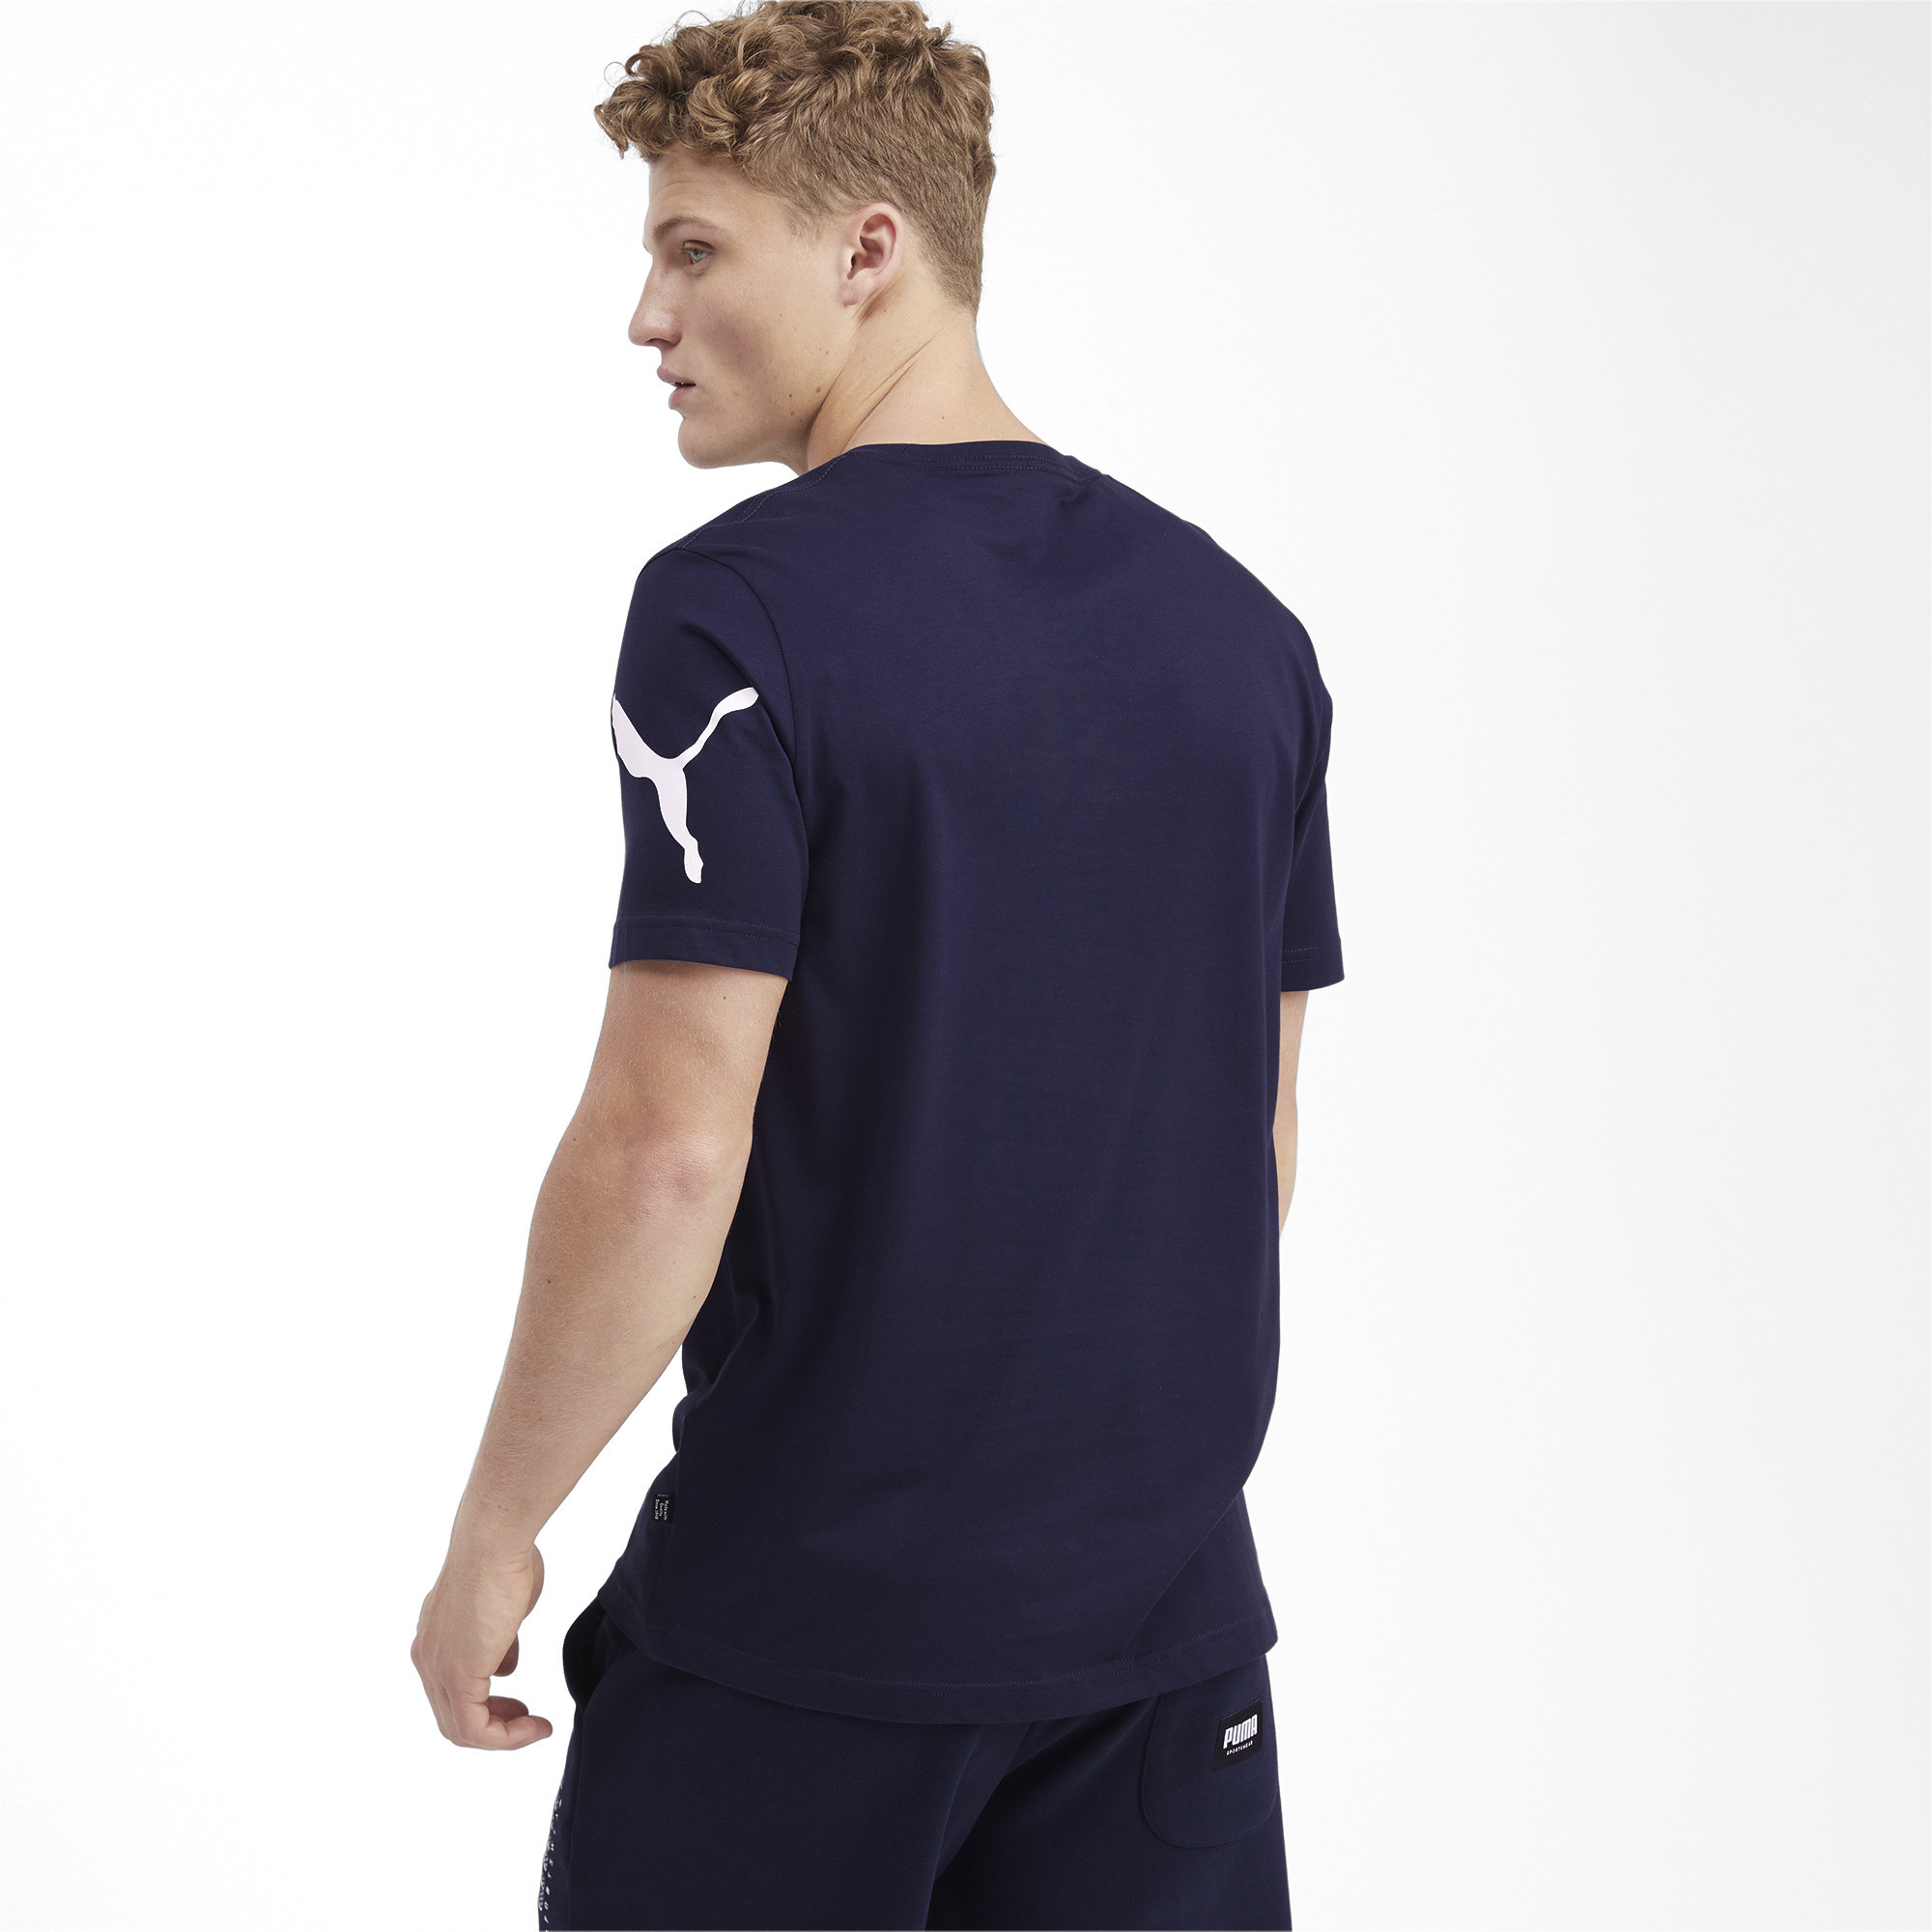 PUMA-Big-Logo-Men-039-s-Tee-Men-Tee-Basics thumbnail 34